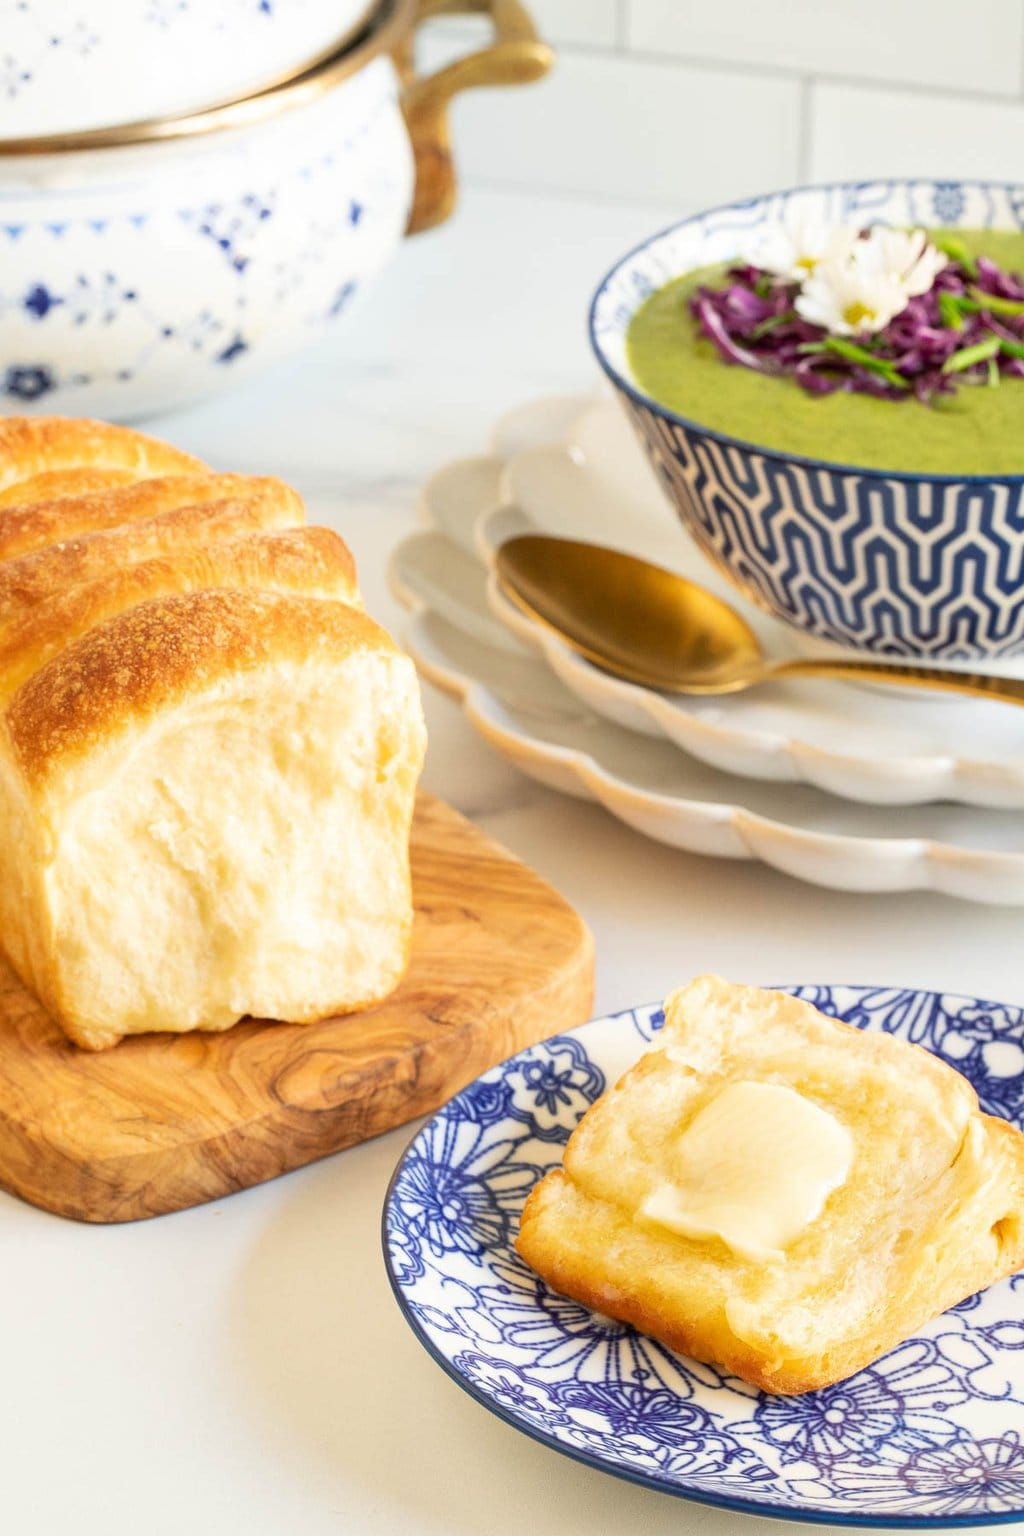 Vertical photo of a loaf of No Knead Pull-Apart Brioche Bread with a slice of the bread buttered on a blue and white patterned individual serving plate. A bowl of Thai Broccoli Spinach Soup is in the background.